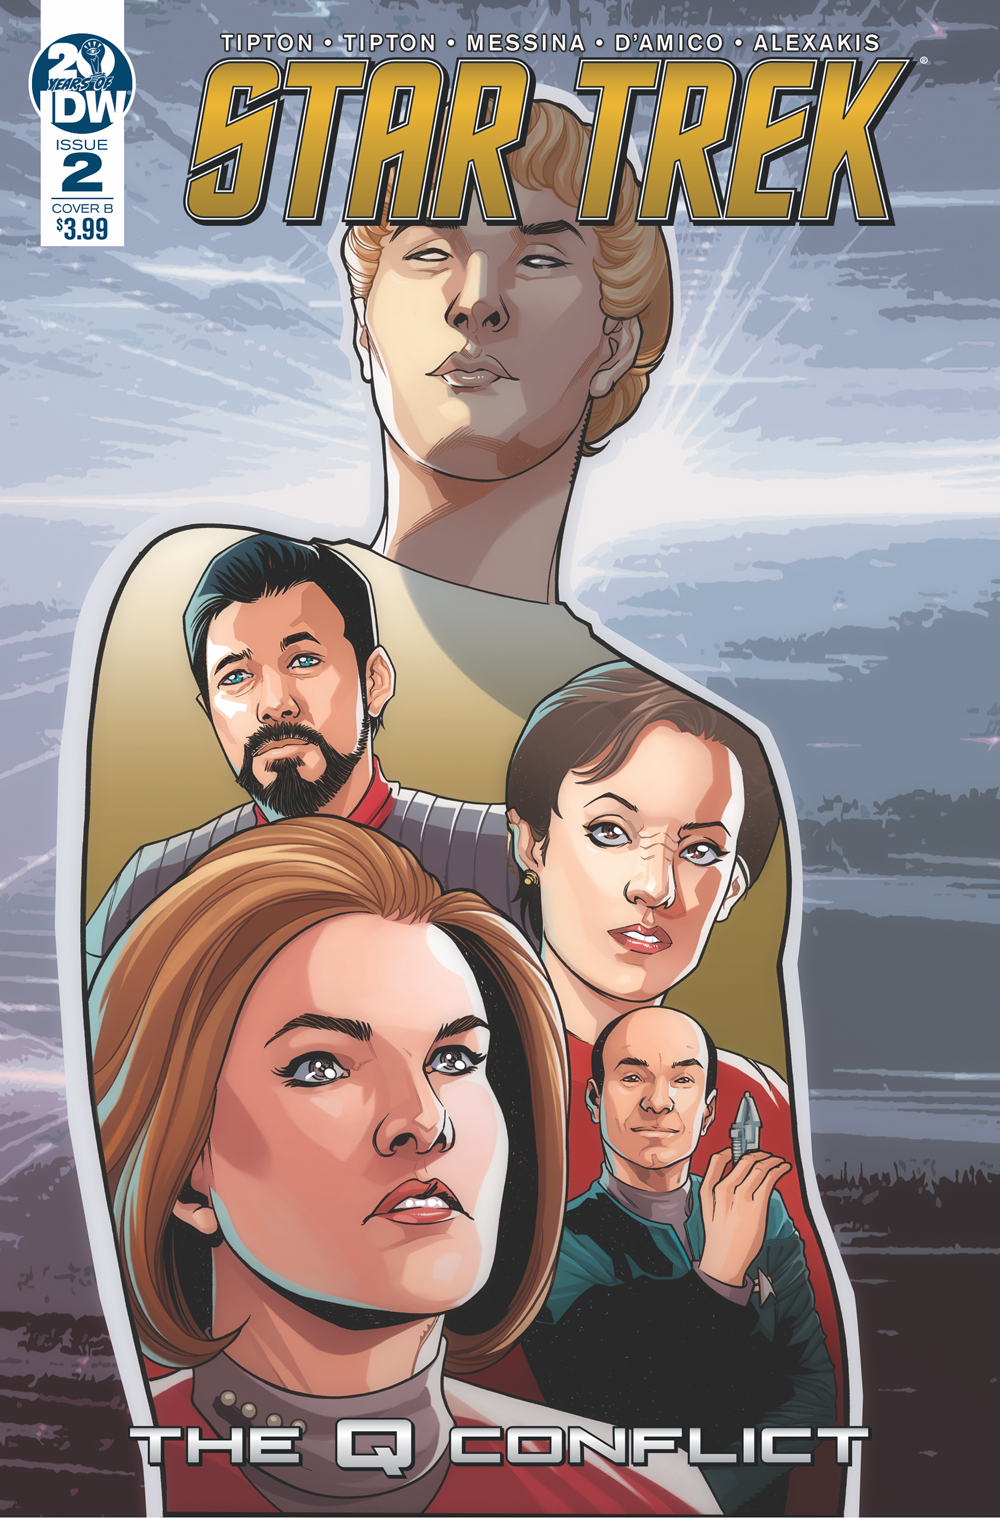 STAR TREK Q CONFLICT #2 (OF 6) CVR B MESSINA